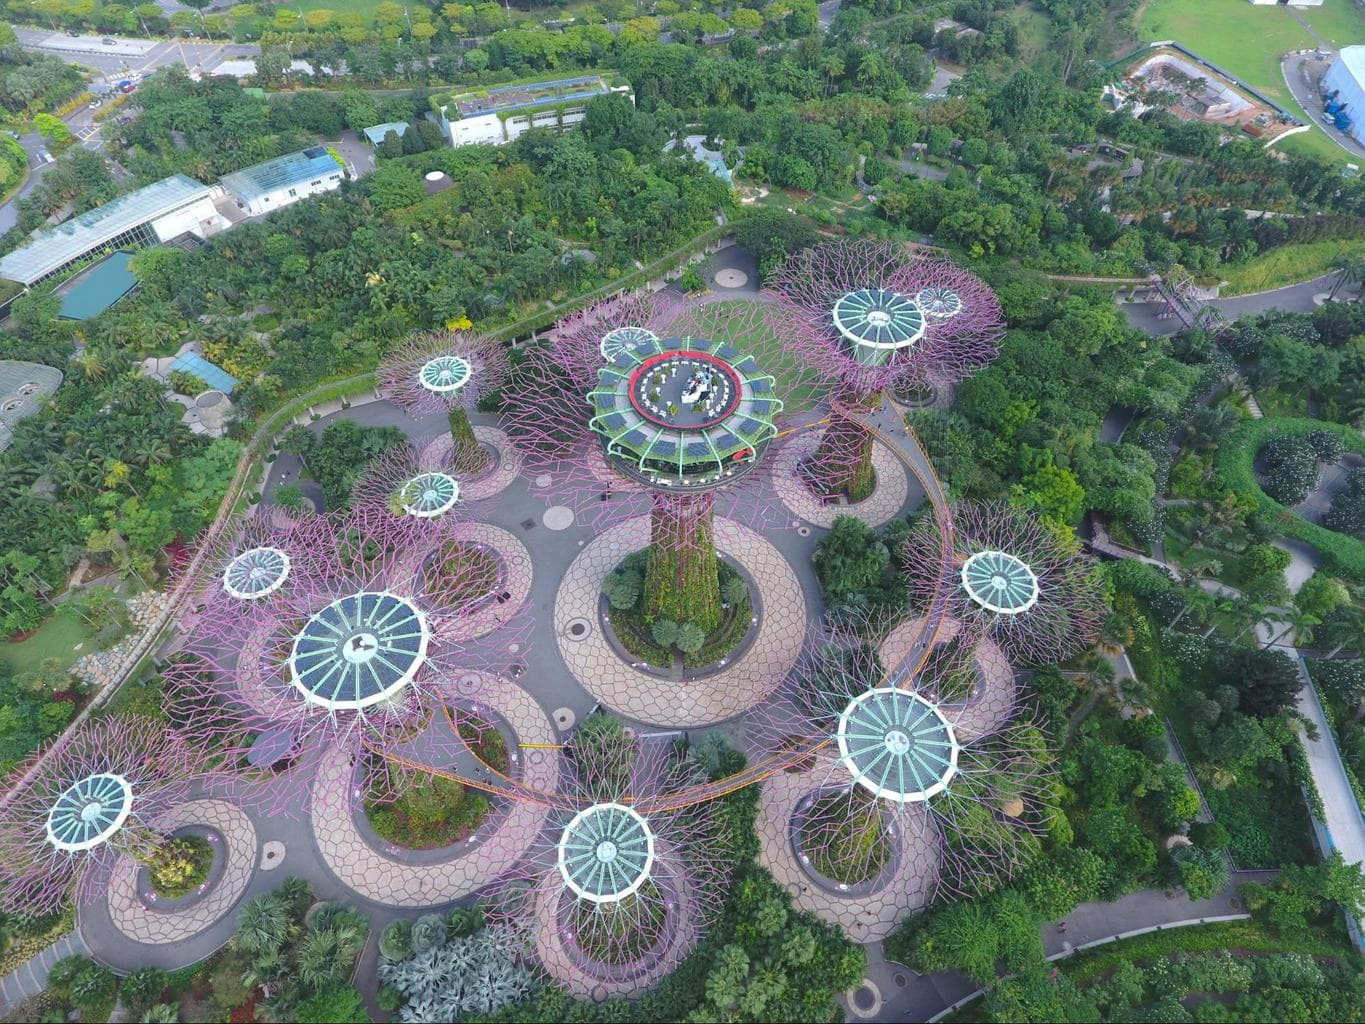 Drone shot of the Supertree Grove